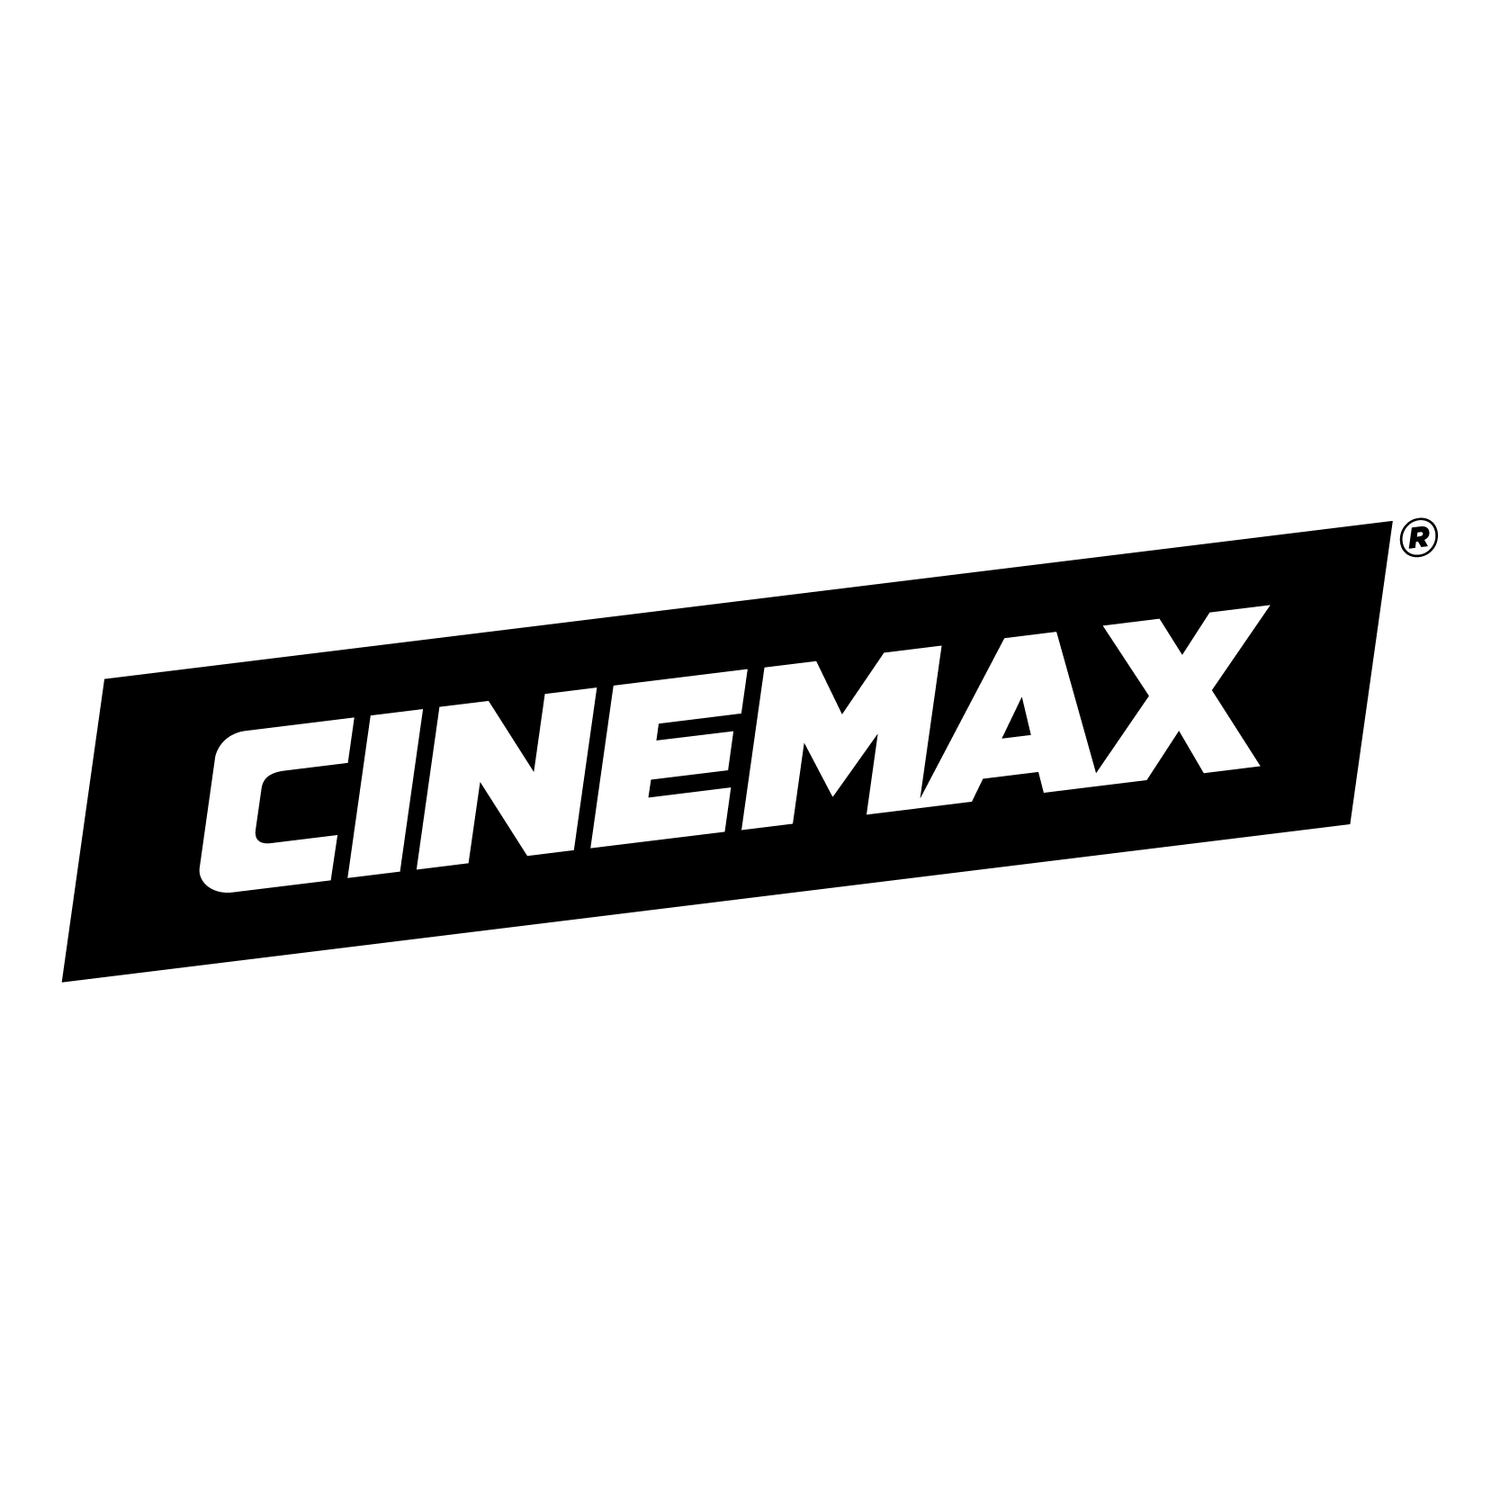 cinemax-02.png